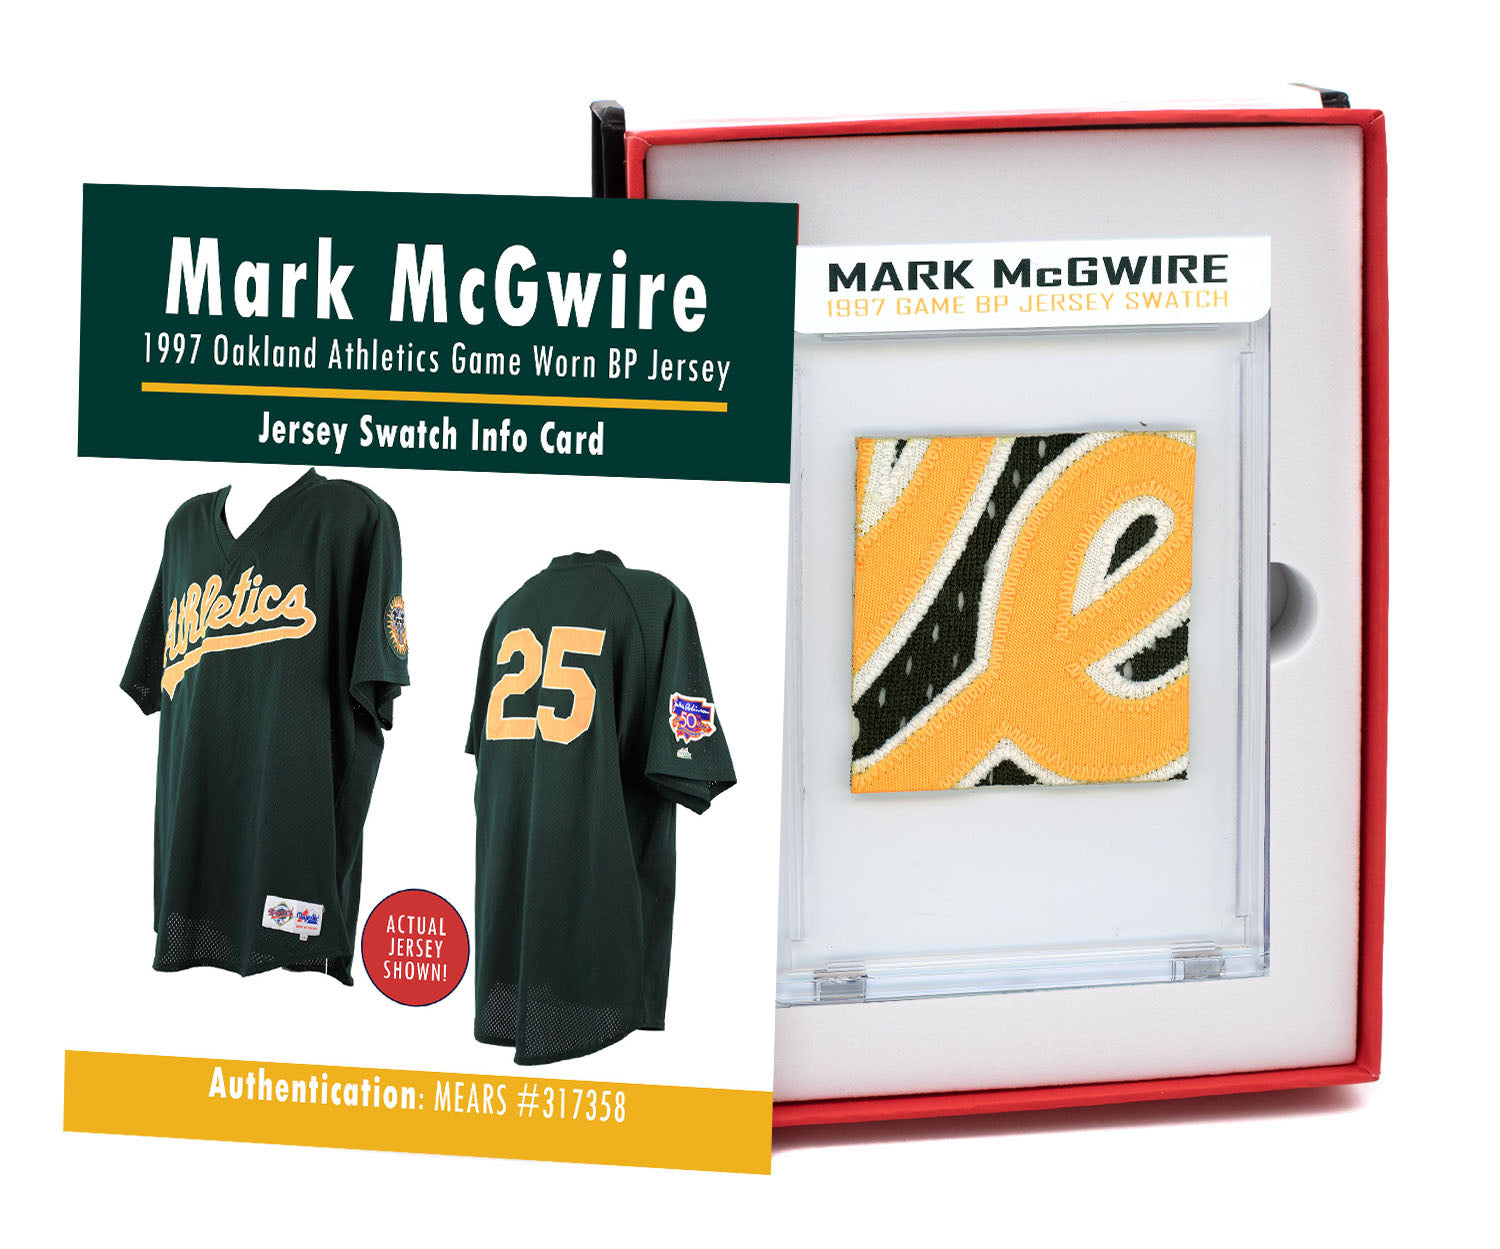 MARK McGWIRE 1997 ATHLETICS GAME WORN BP JERSEY MYSTERY SWATCH BOX!